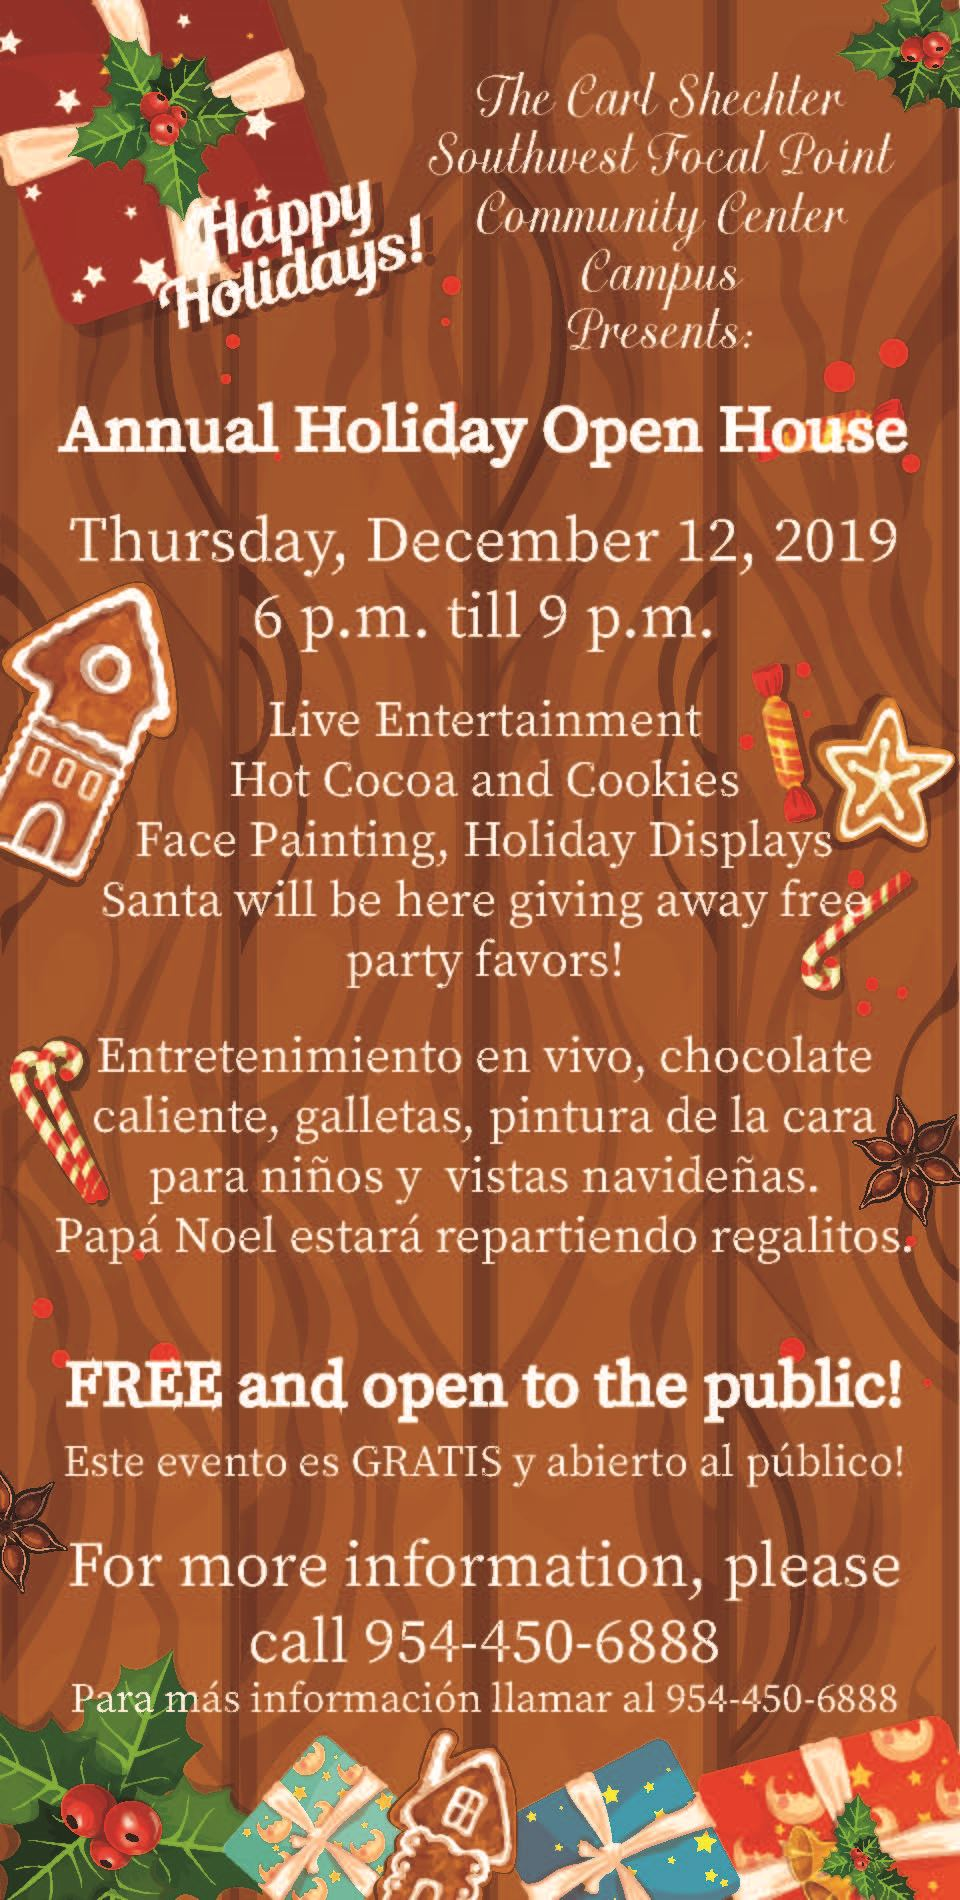 SWFP Holiday Open House 2019